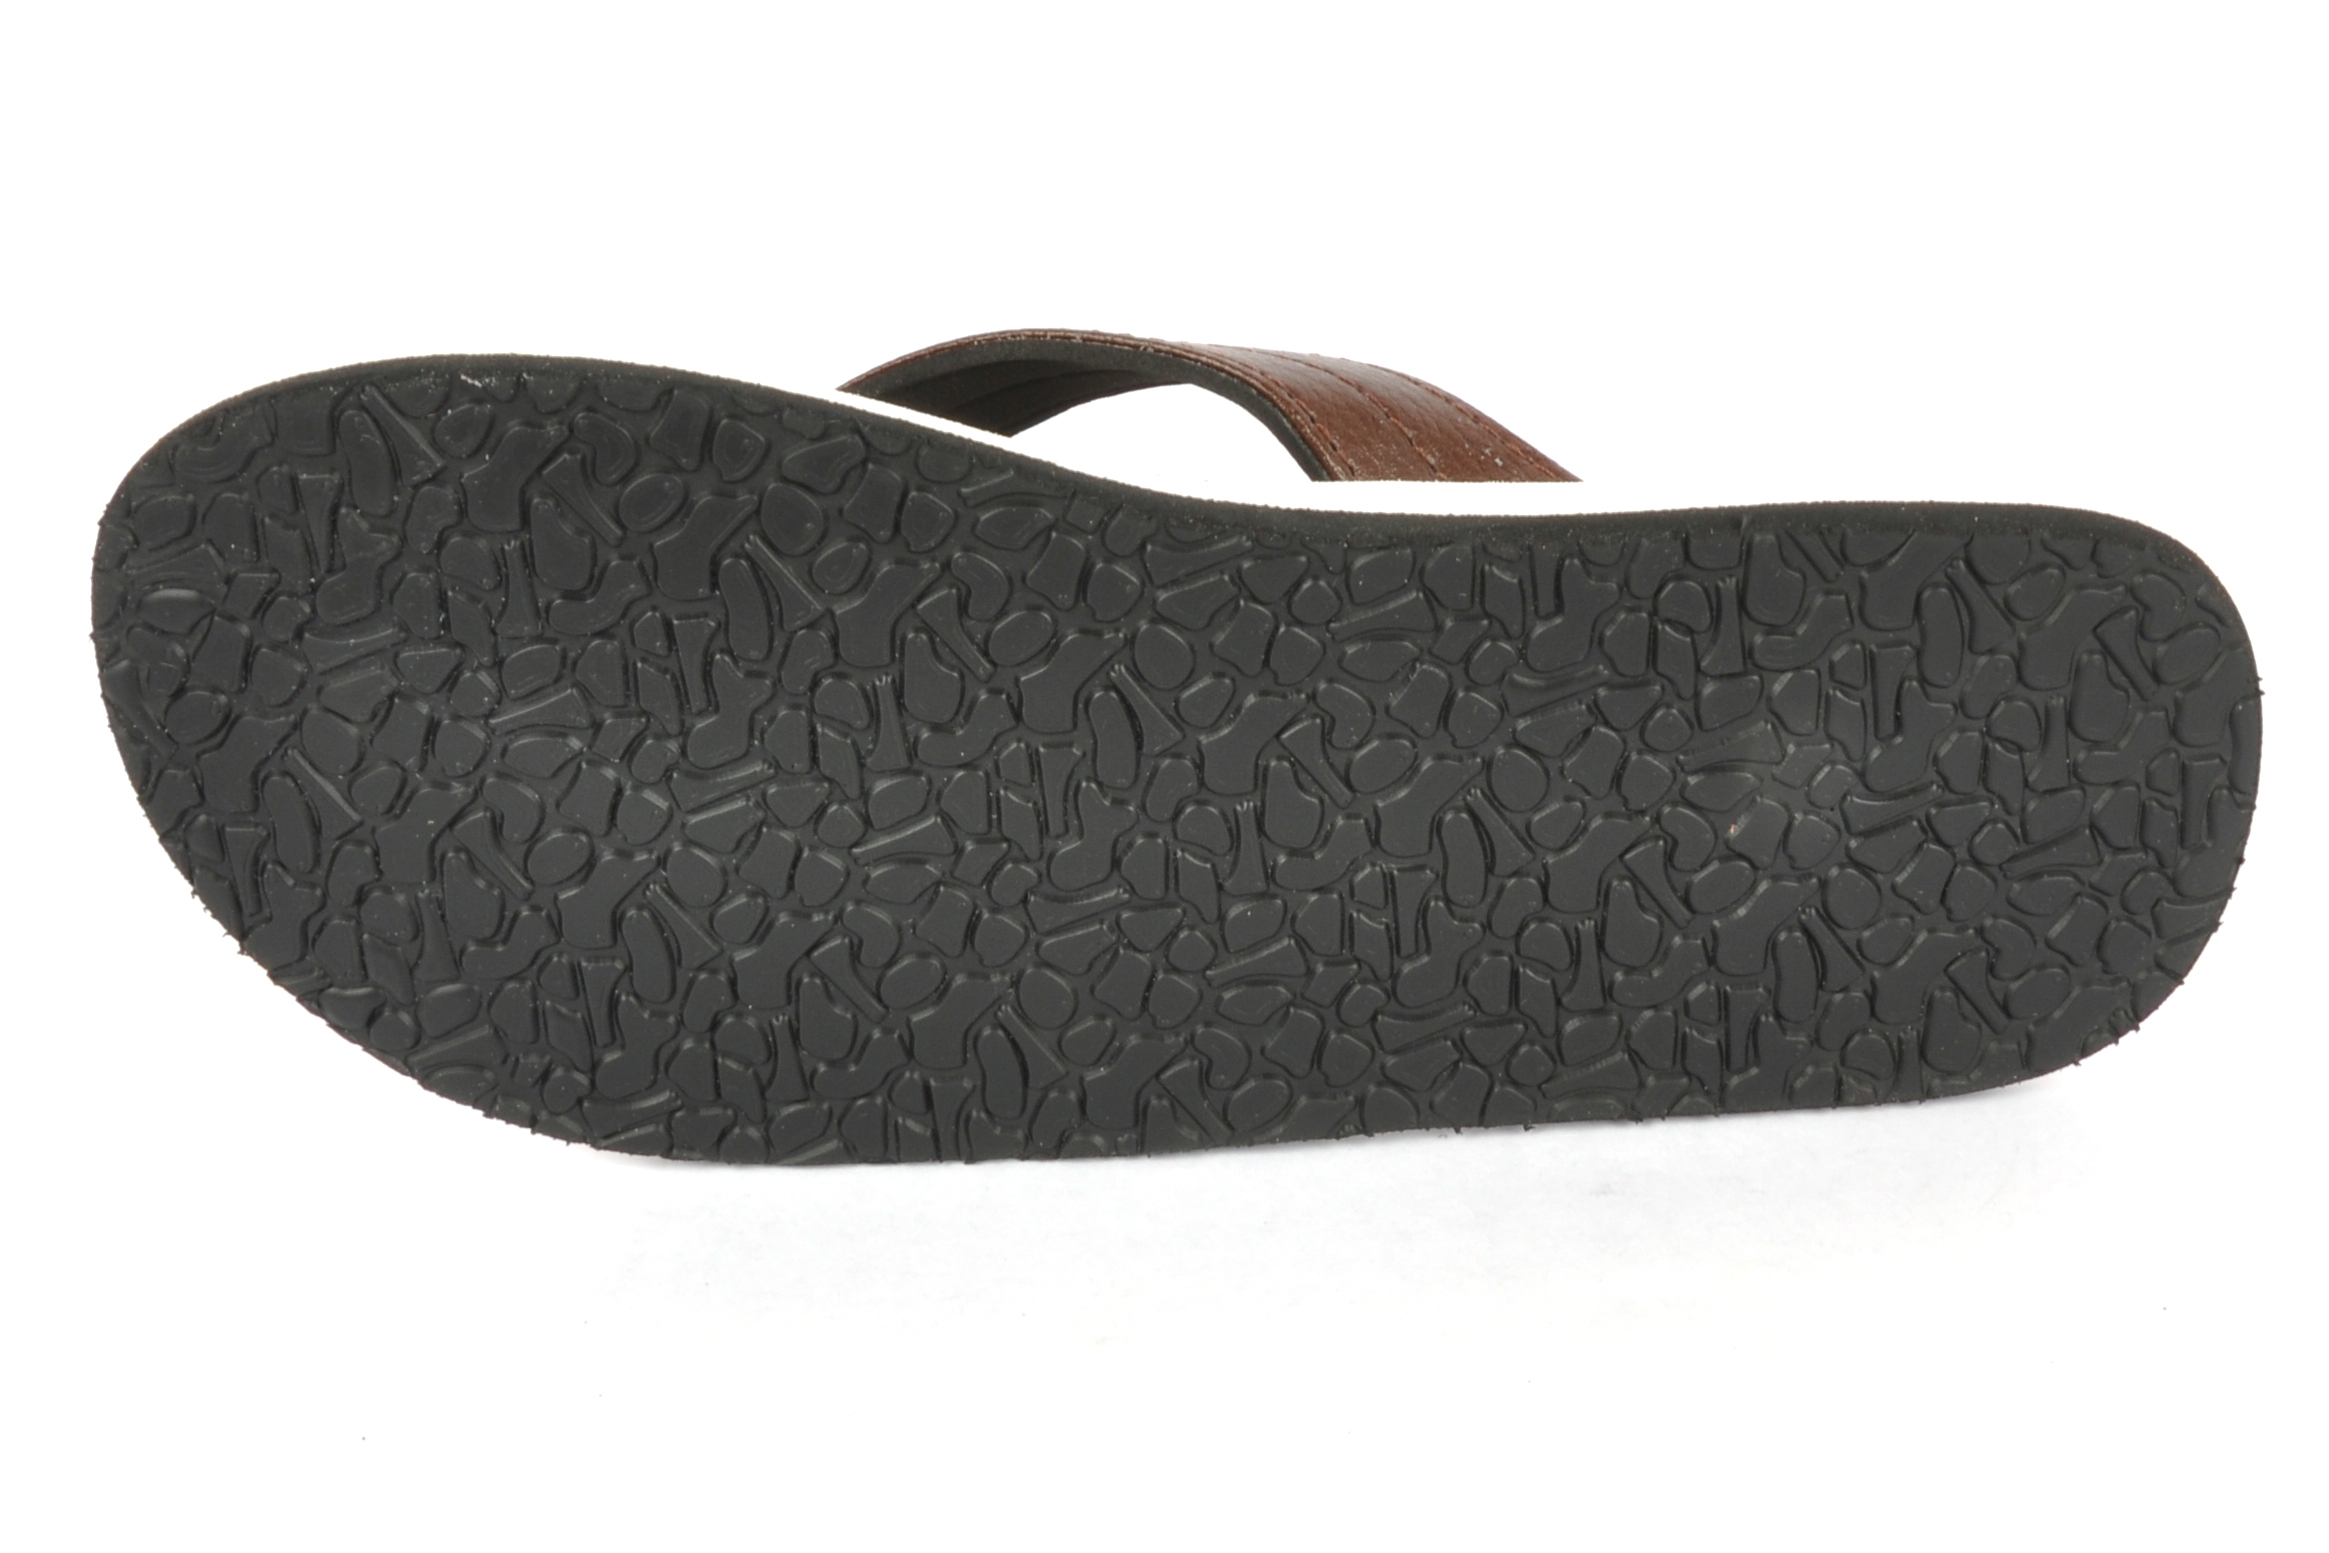 Tan Brown Slipper